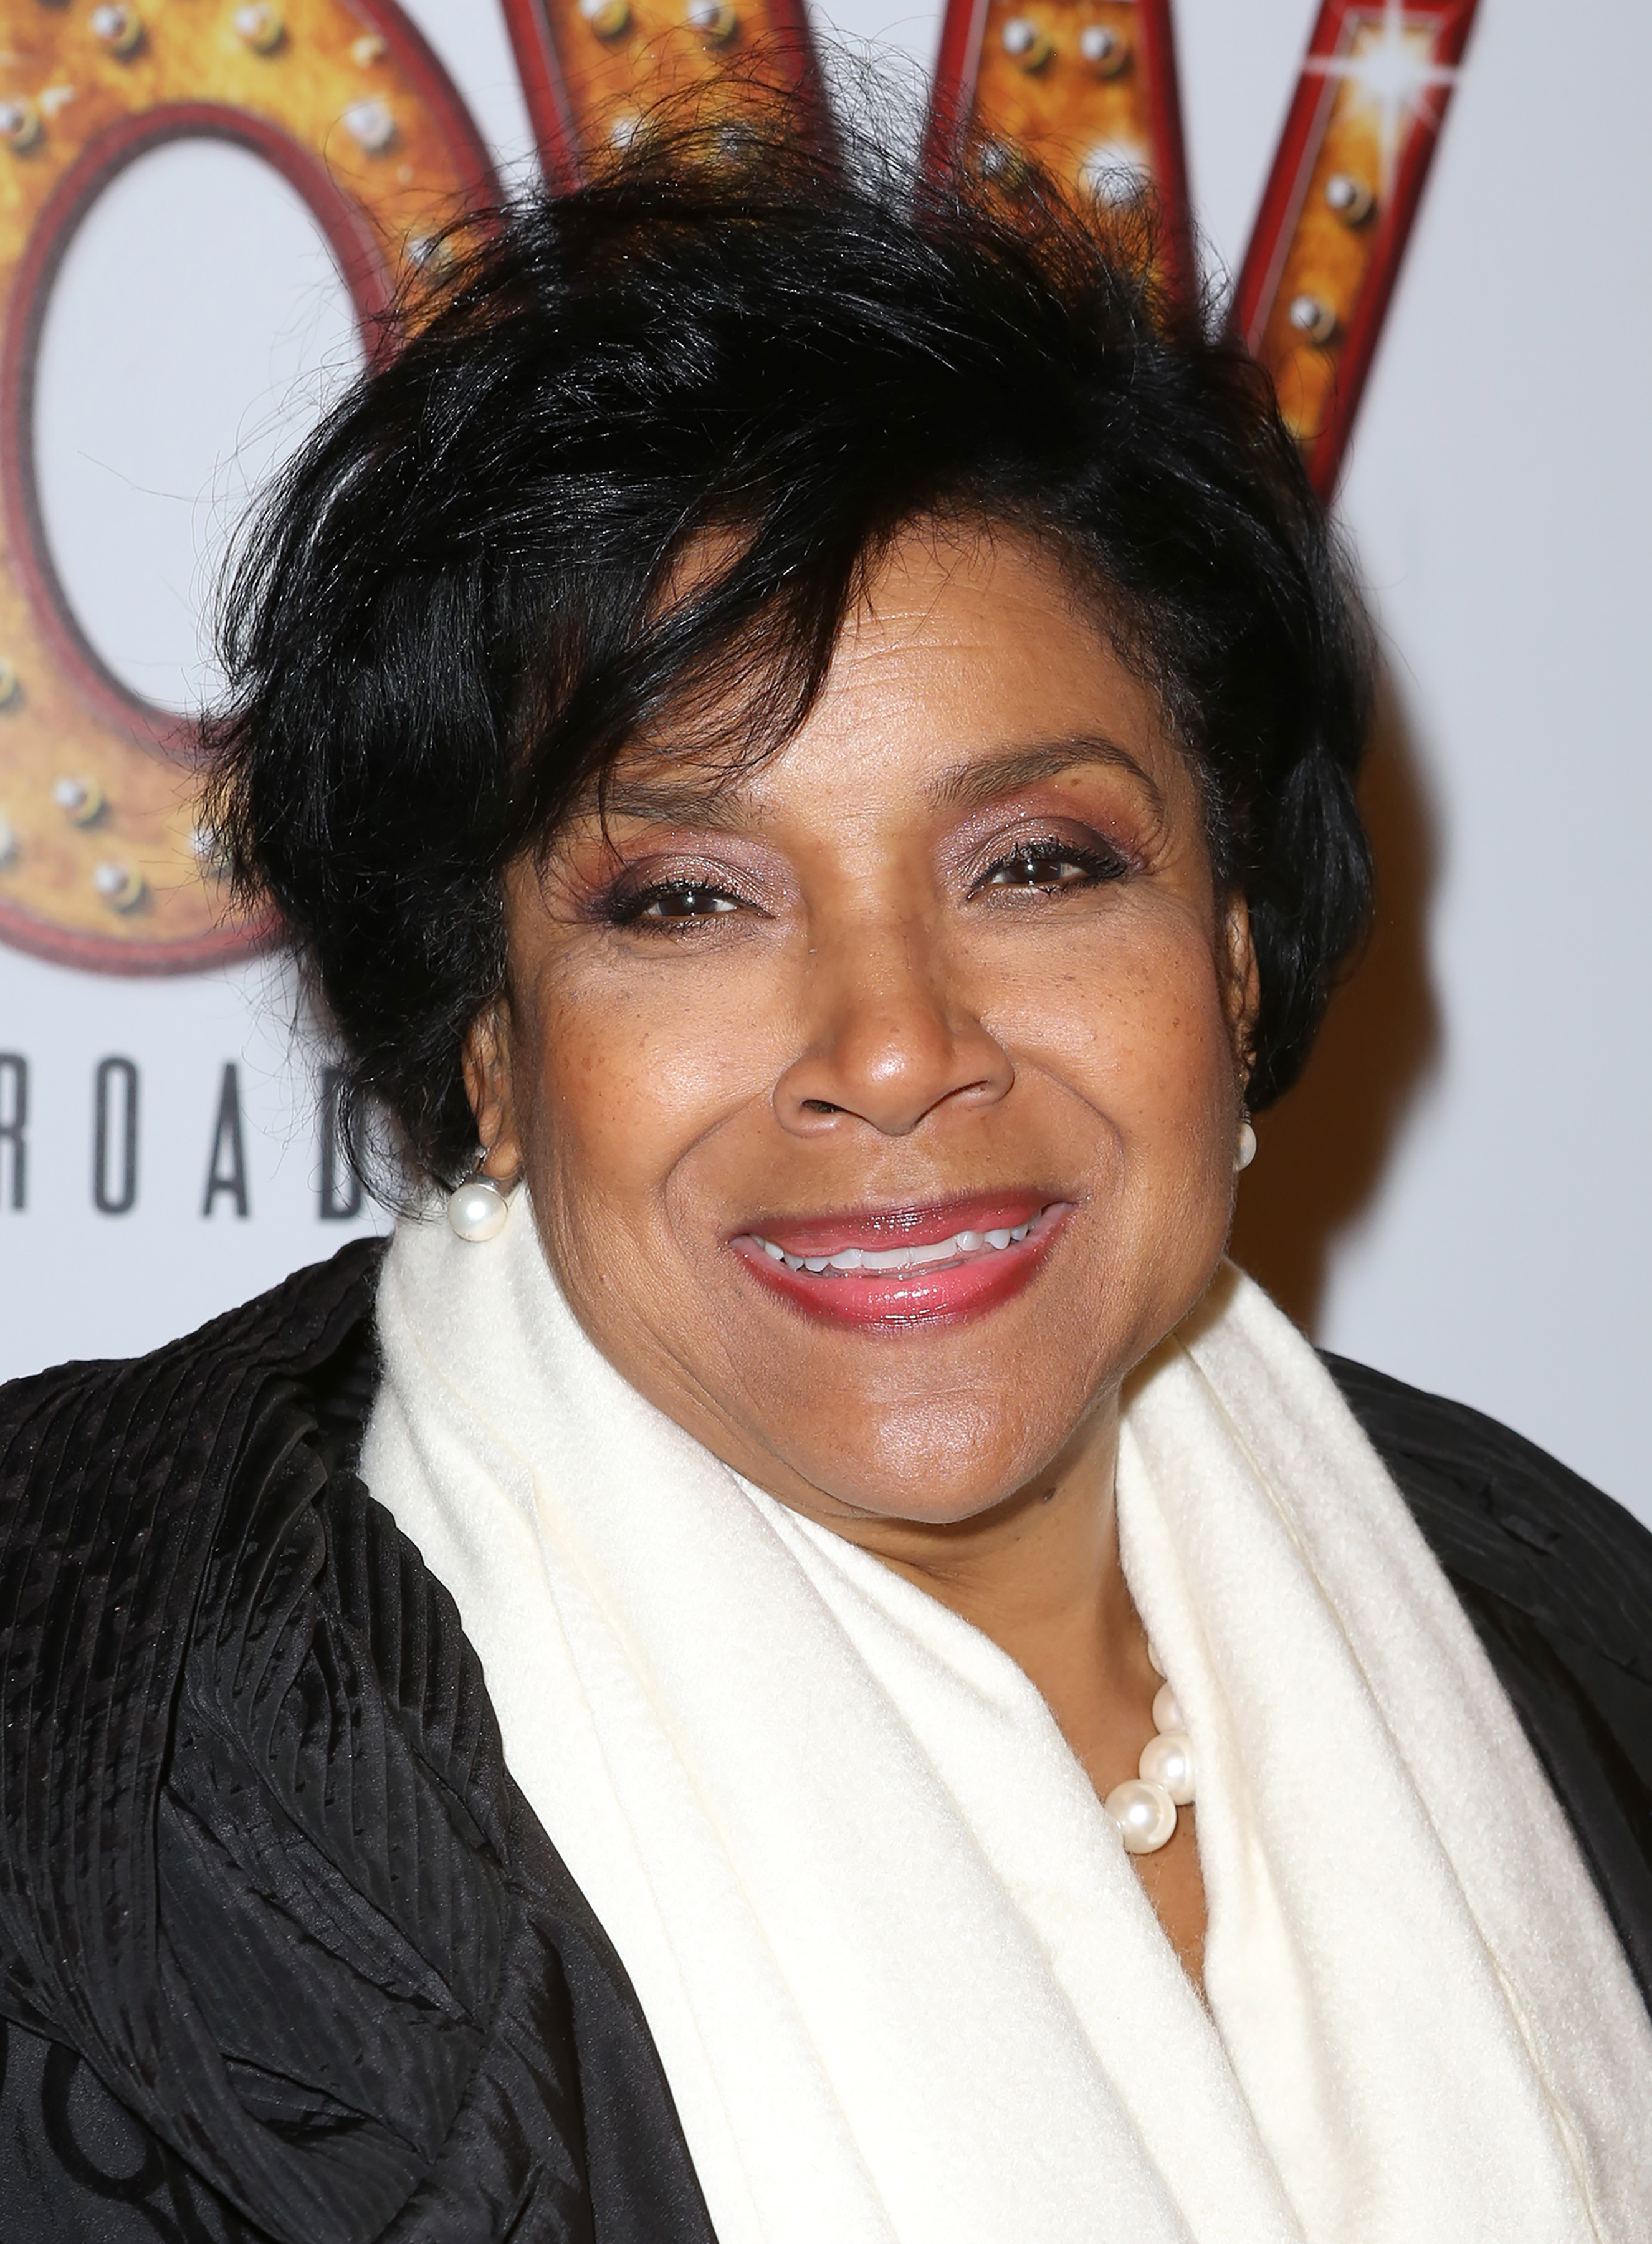 Phylicia Rashad attends the Broadway Opening Performance of 'Side Show' on Nov. 17, 2014 in New York City.